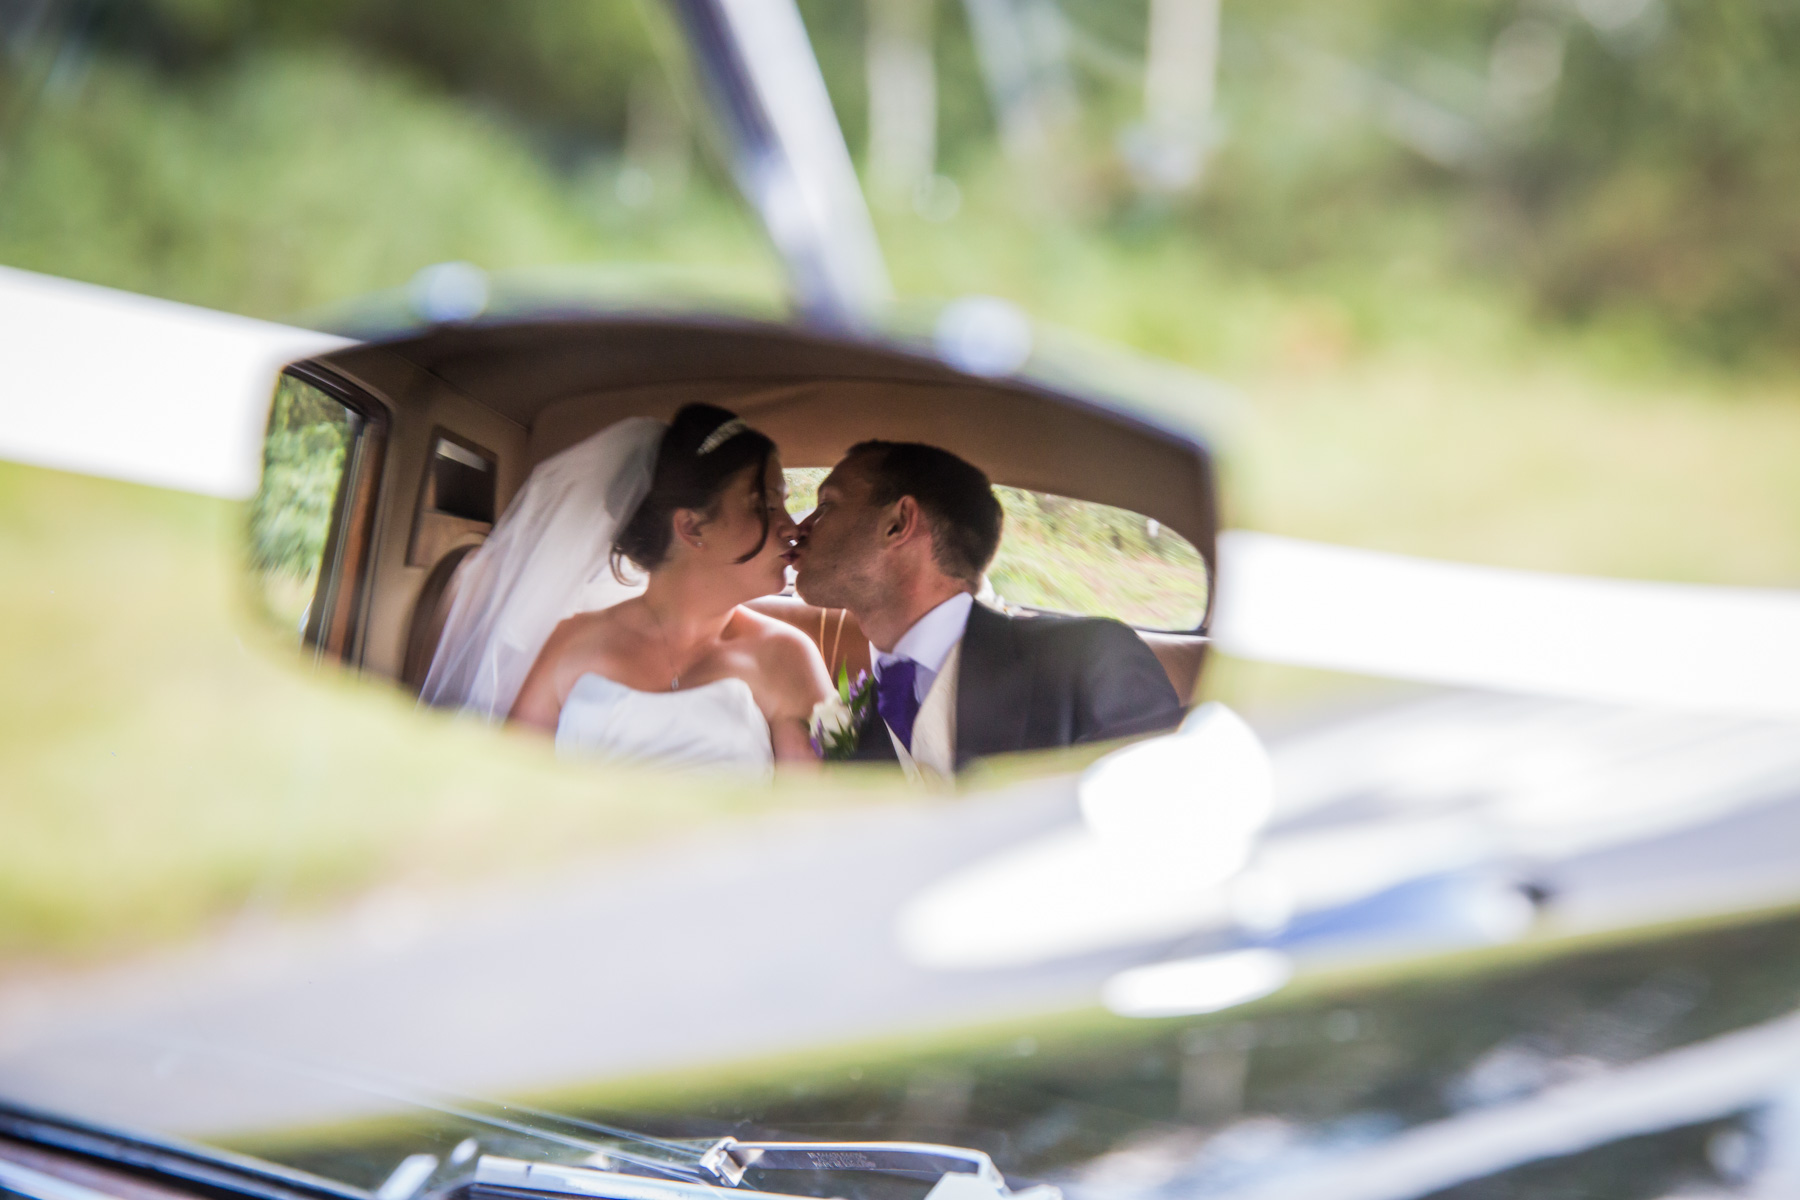 Sussex romantic wedding photographer Richard Murgatroyd Photography